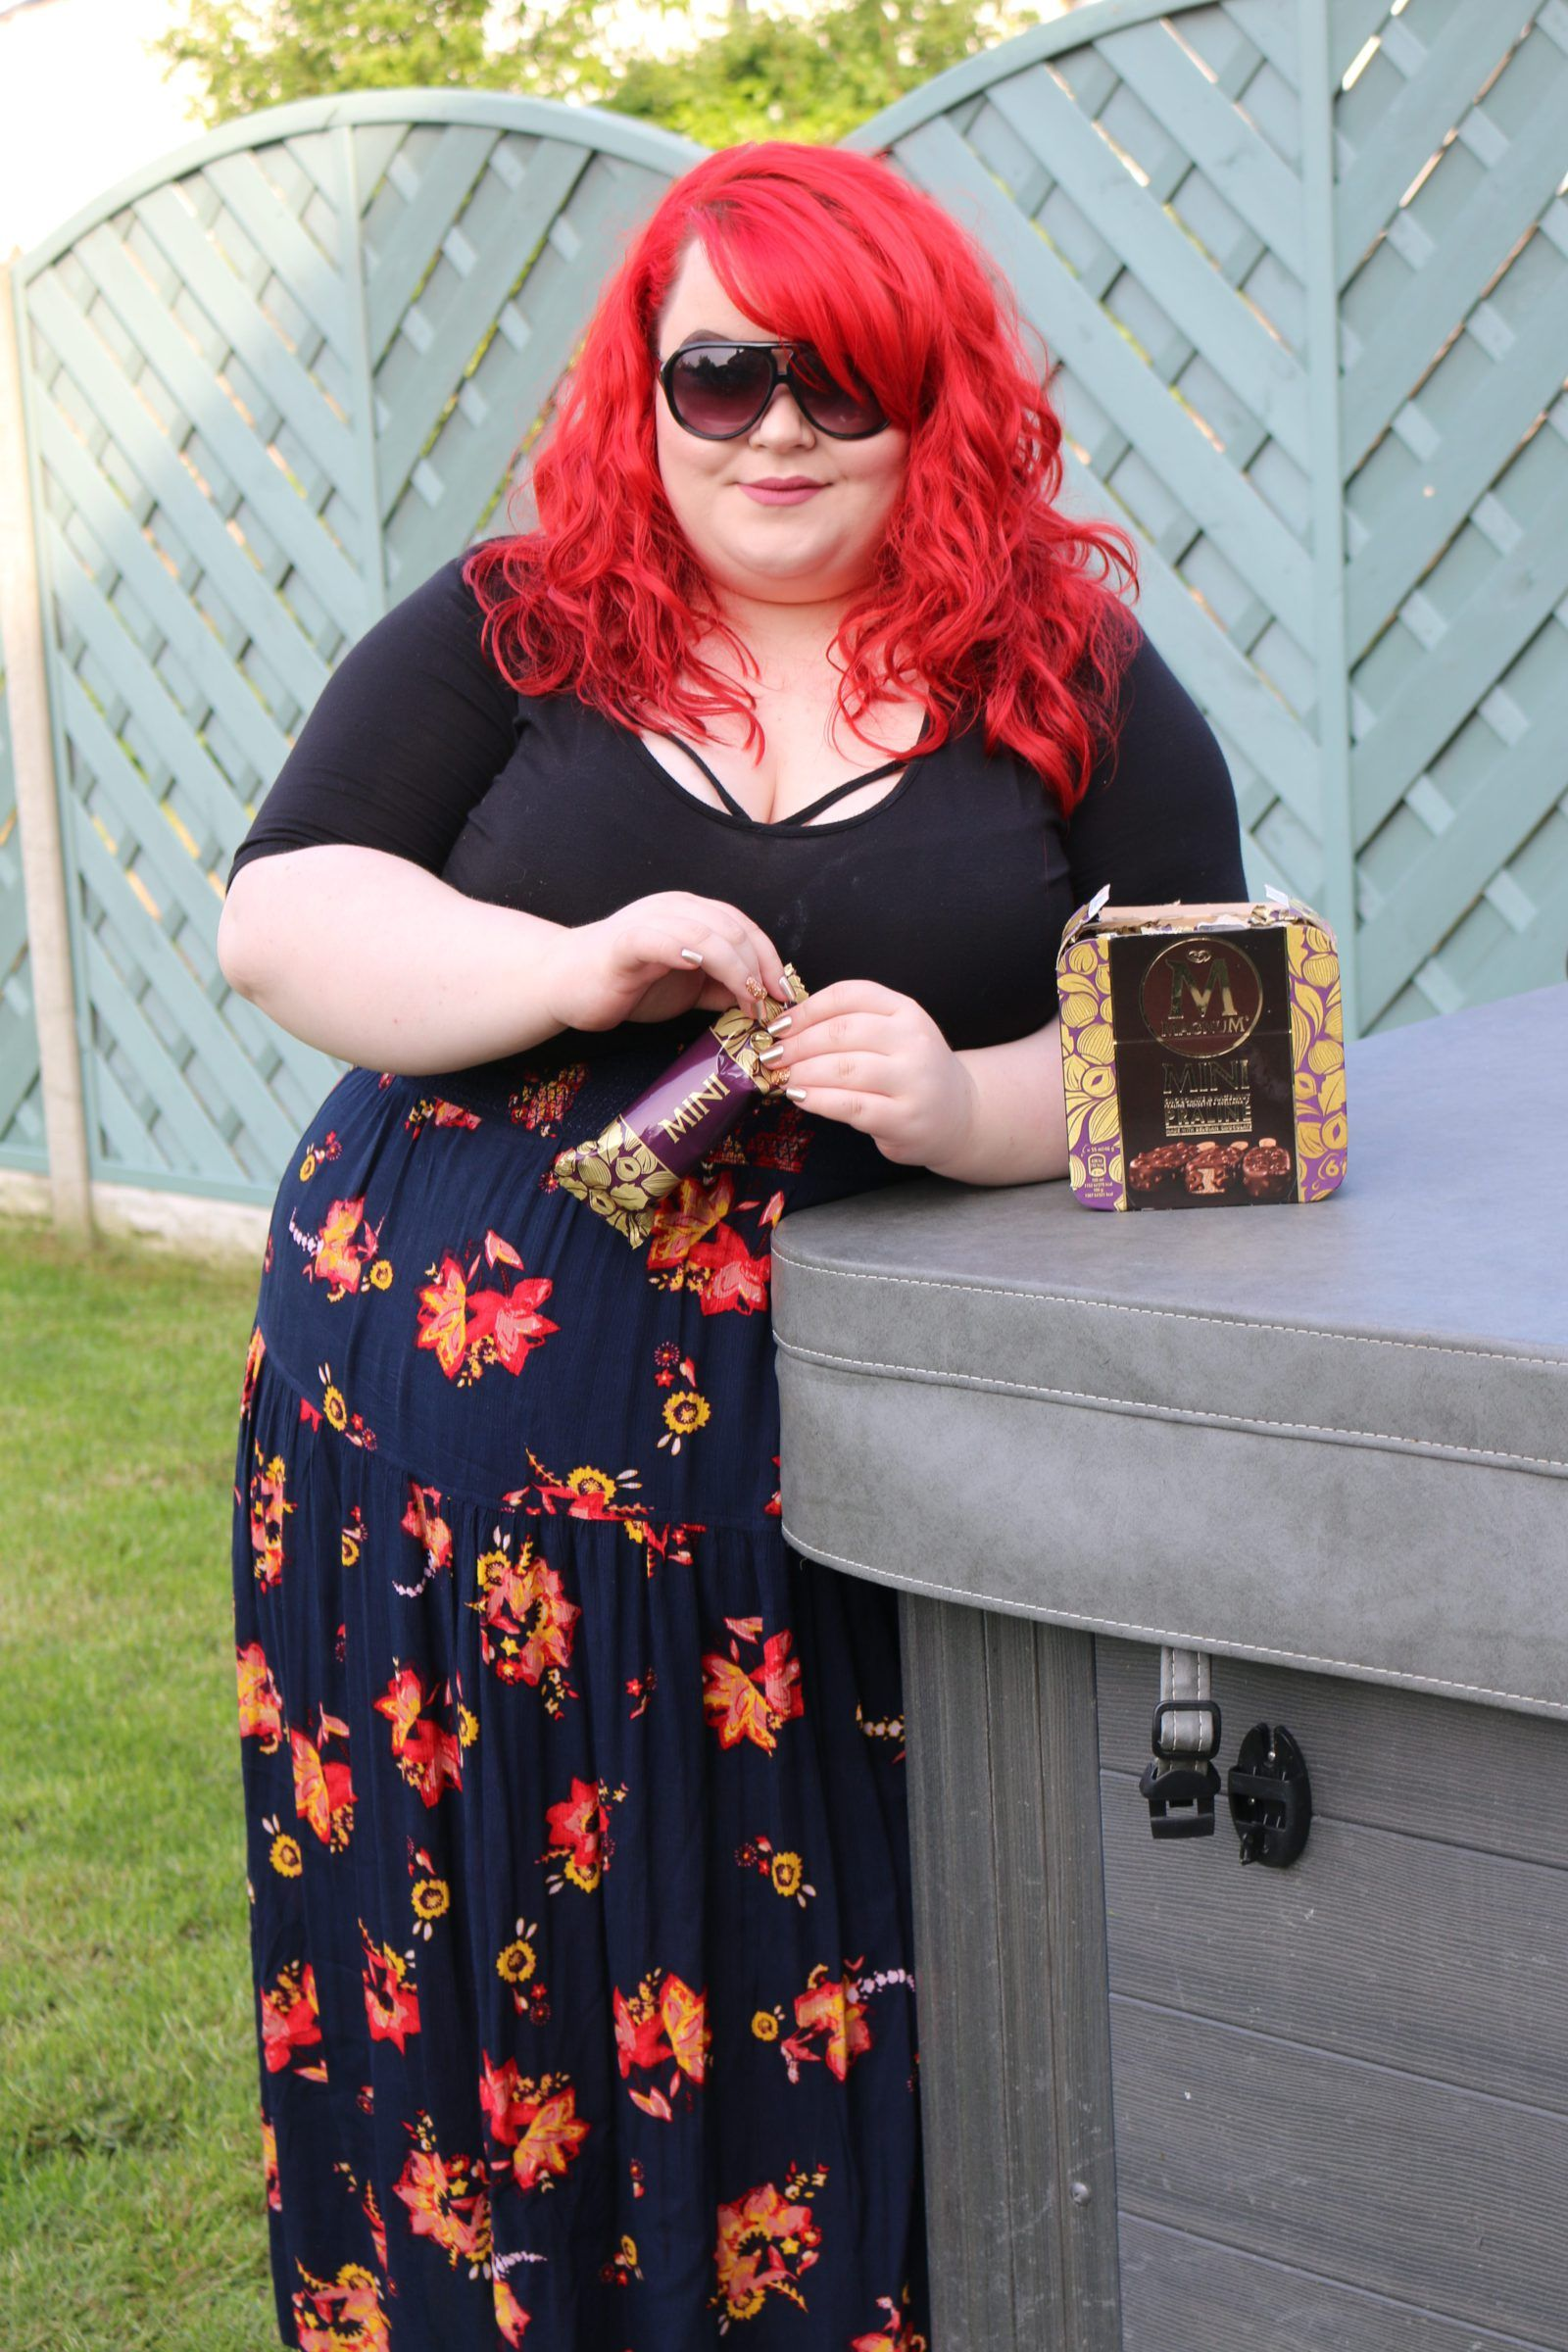 Have thought georgina bbw red head can